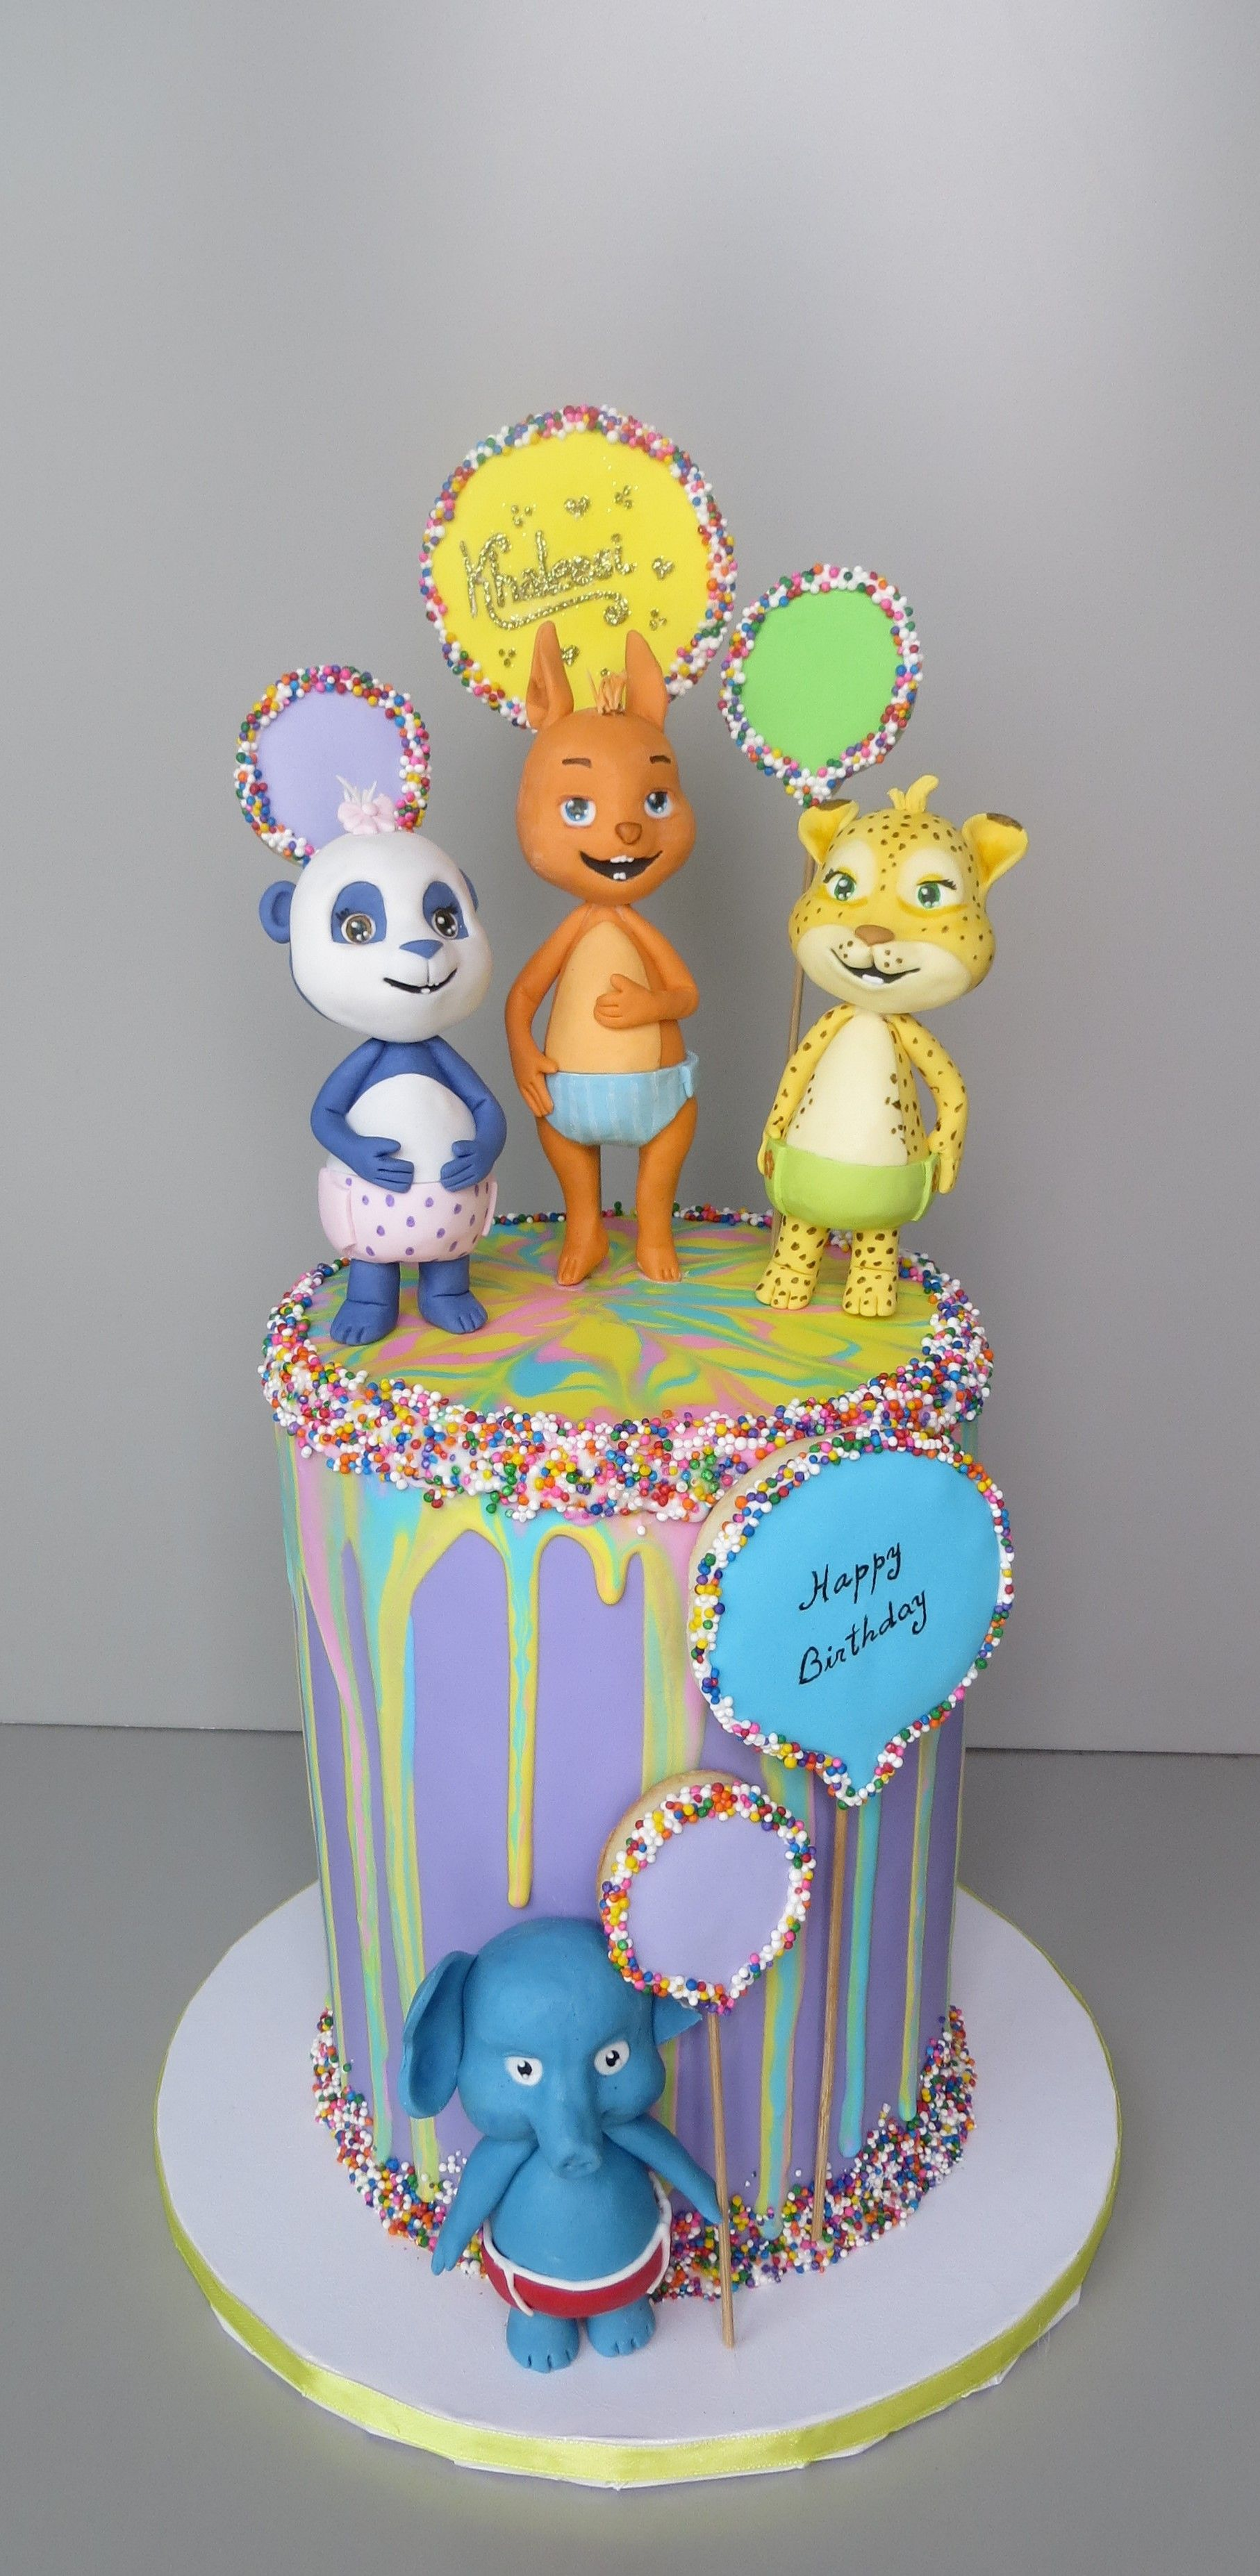 Word Party Drip Cake Cakes By Beatriz Pinterest Drip Cakes - Words on cake for birthday